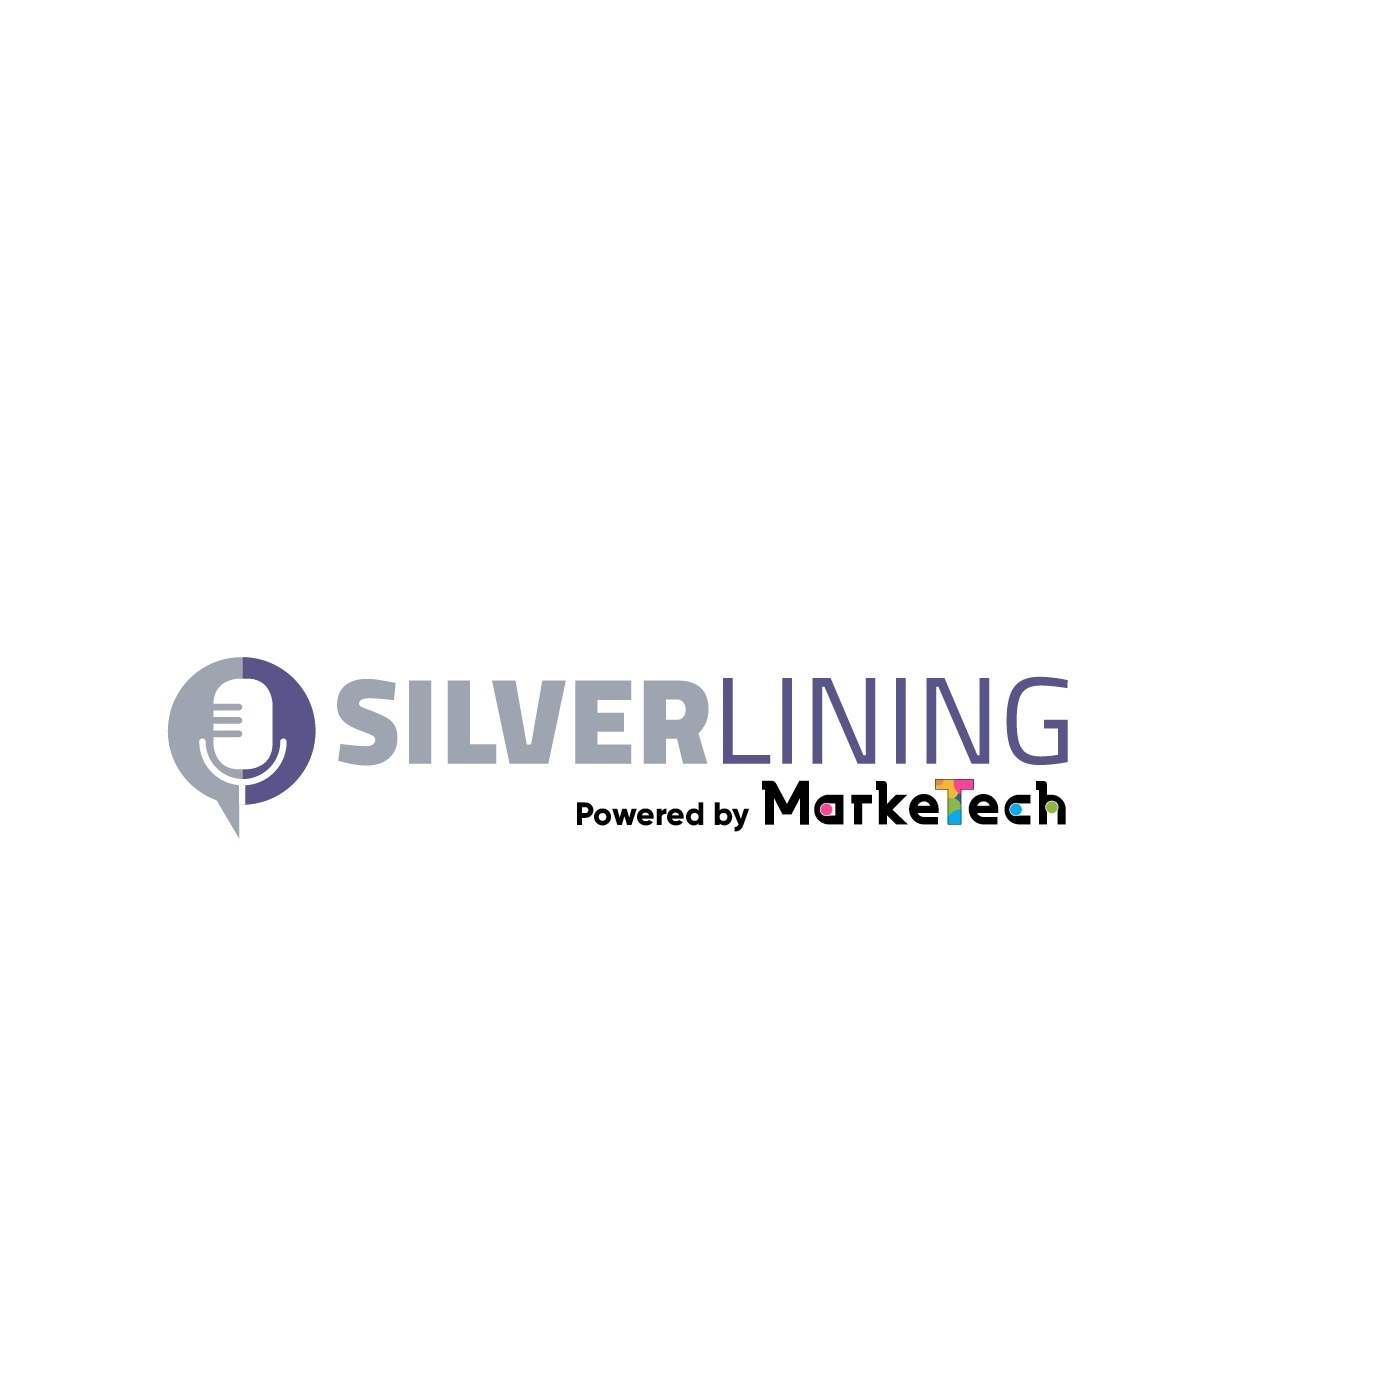 SilverLining Episode 38: Cloud Native Security Foundations